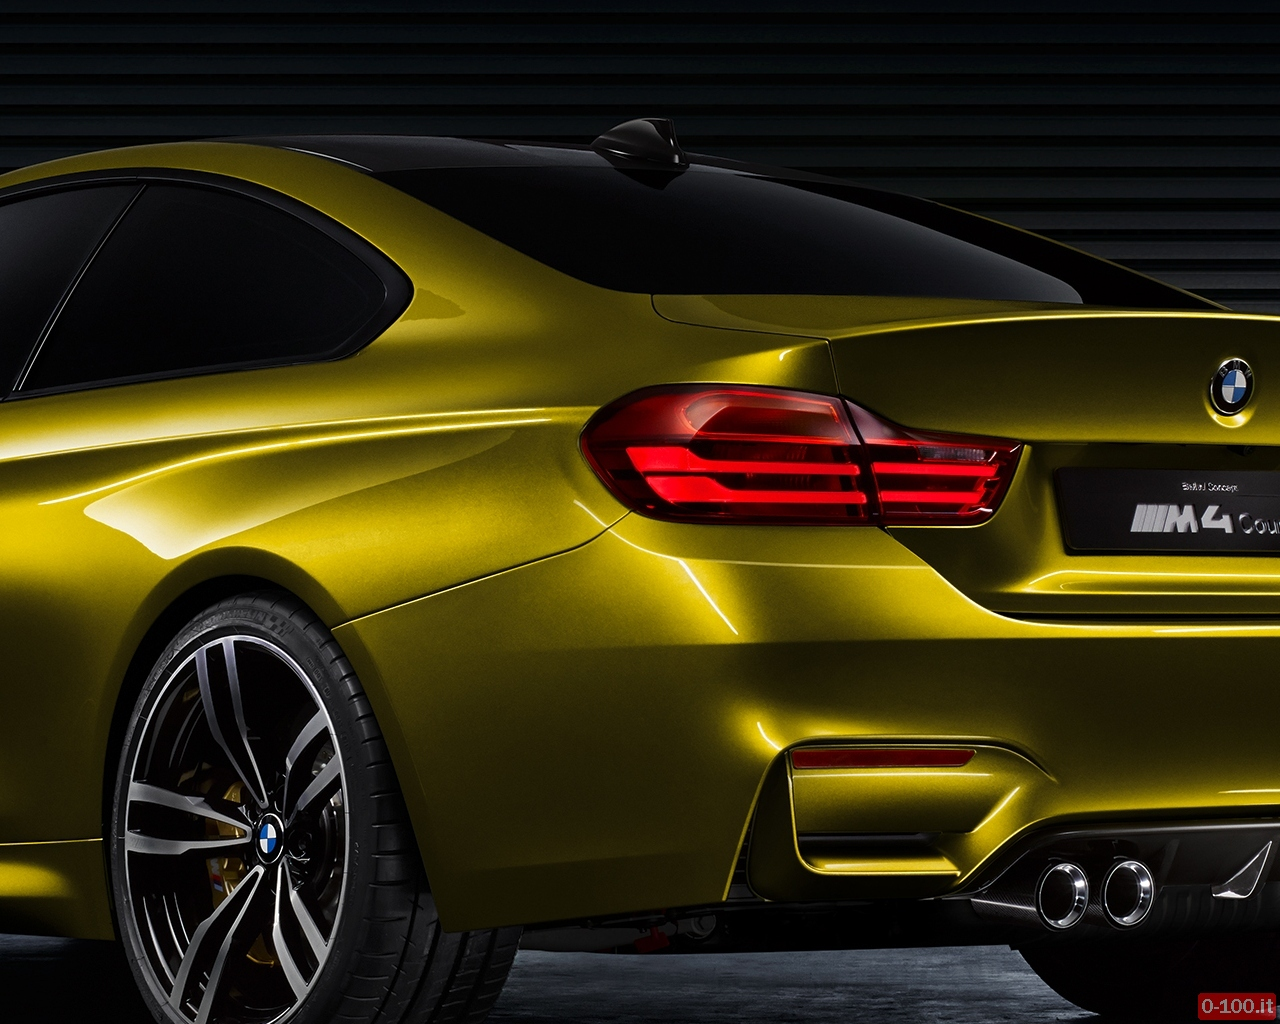 BMW_Concept_M4_Coupe_6